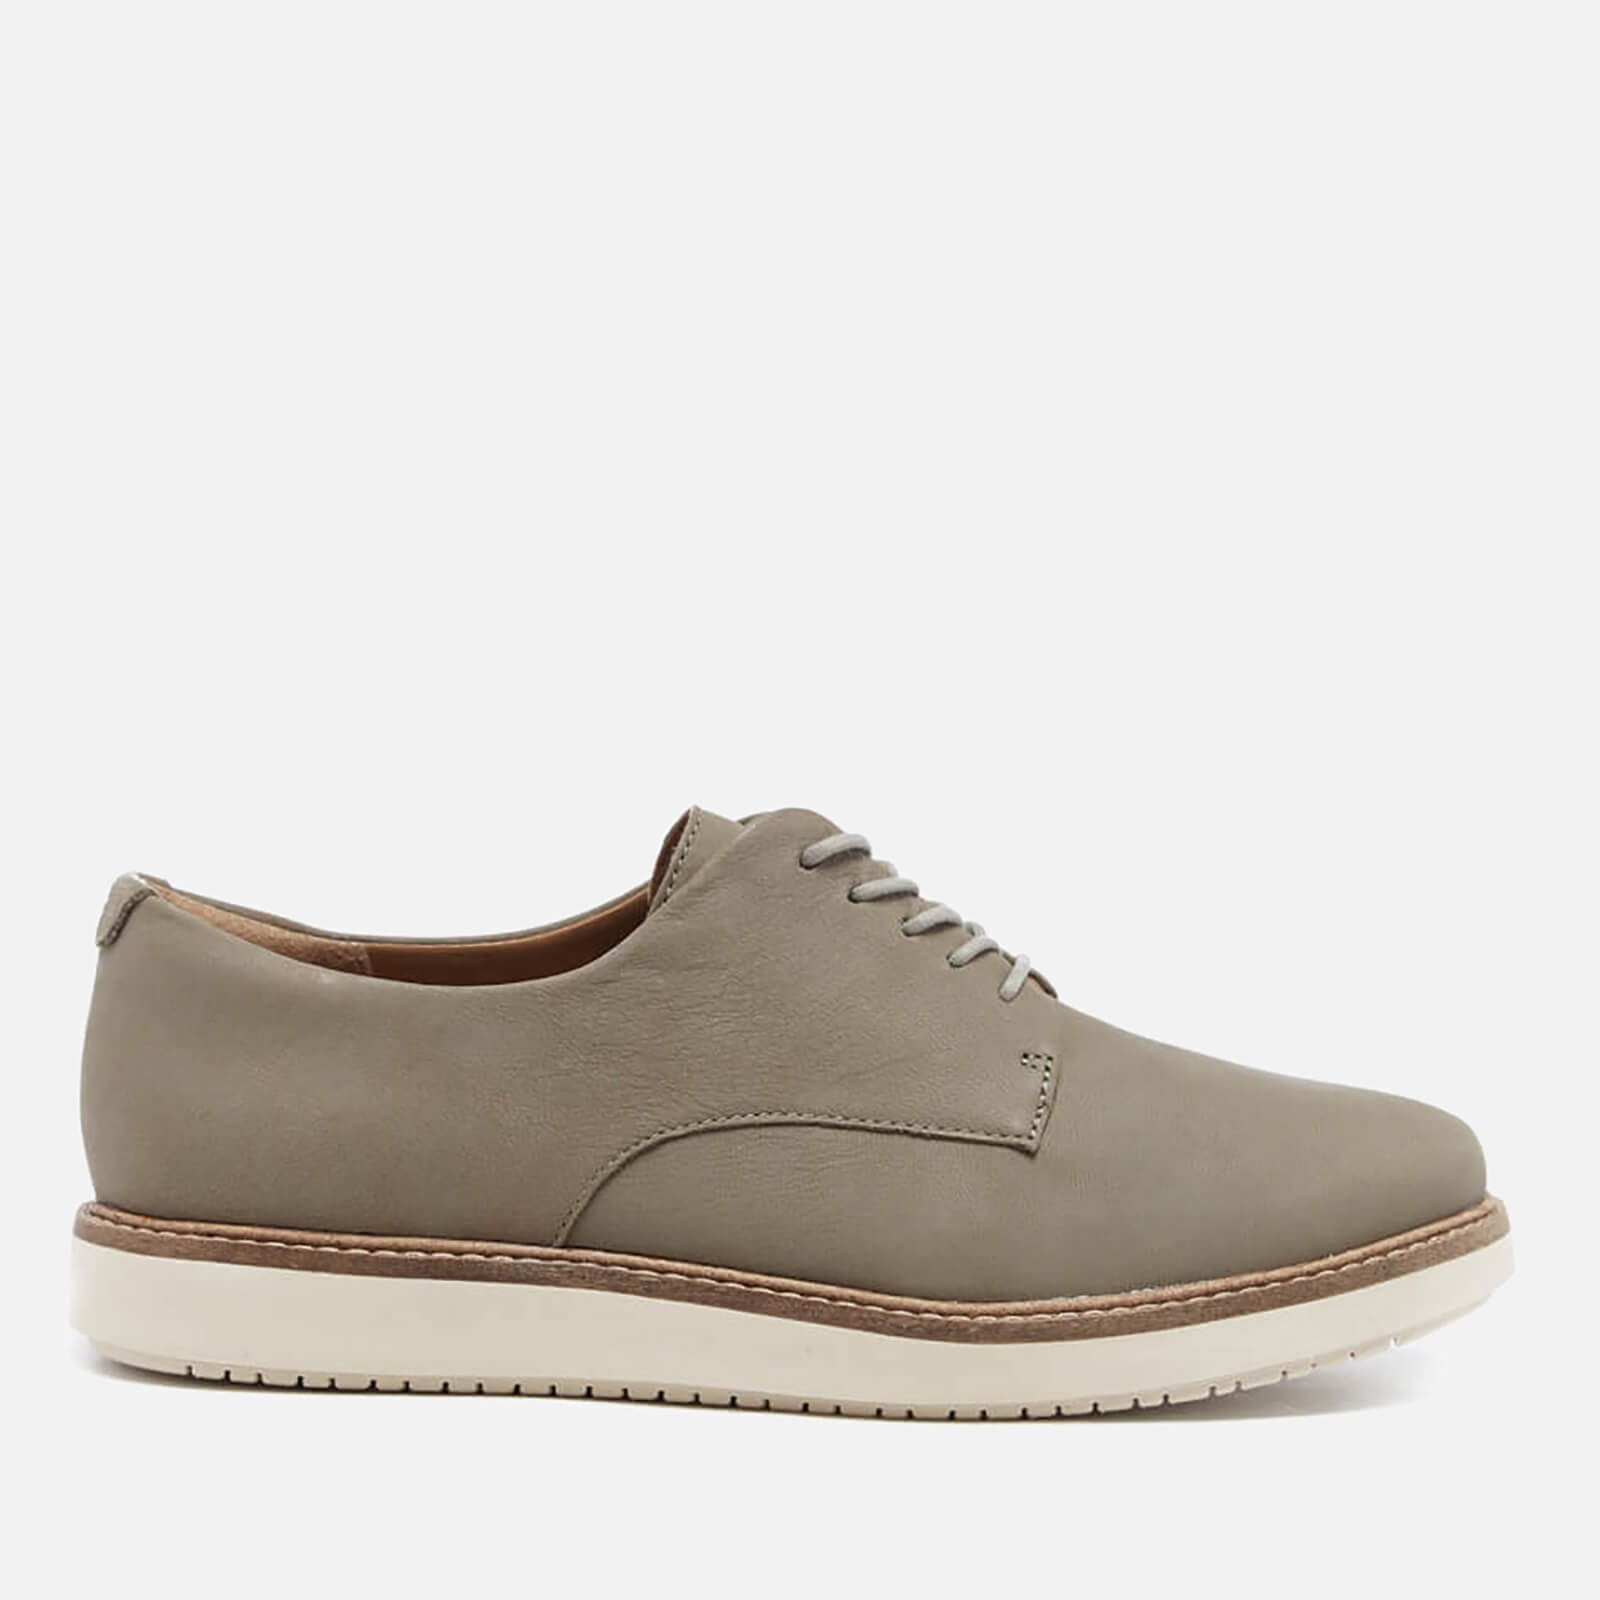 Clarks Women's Glick Suede Darby Shoes Sage